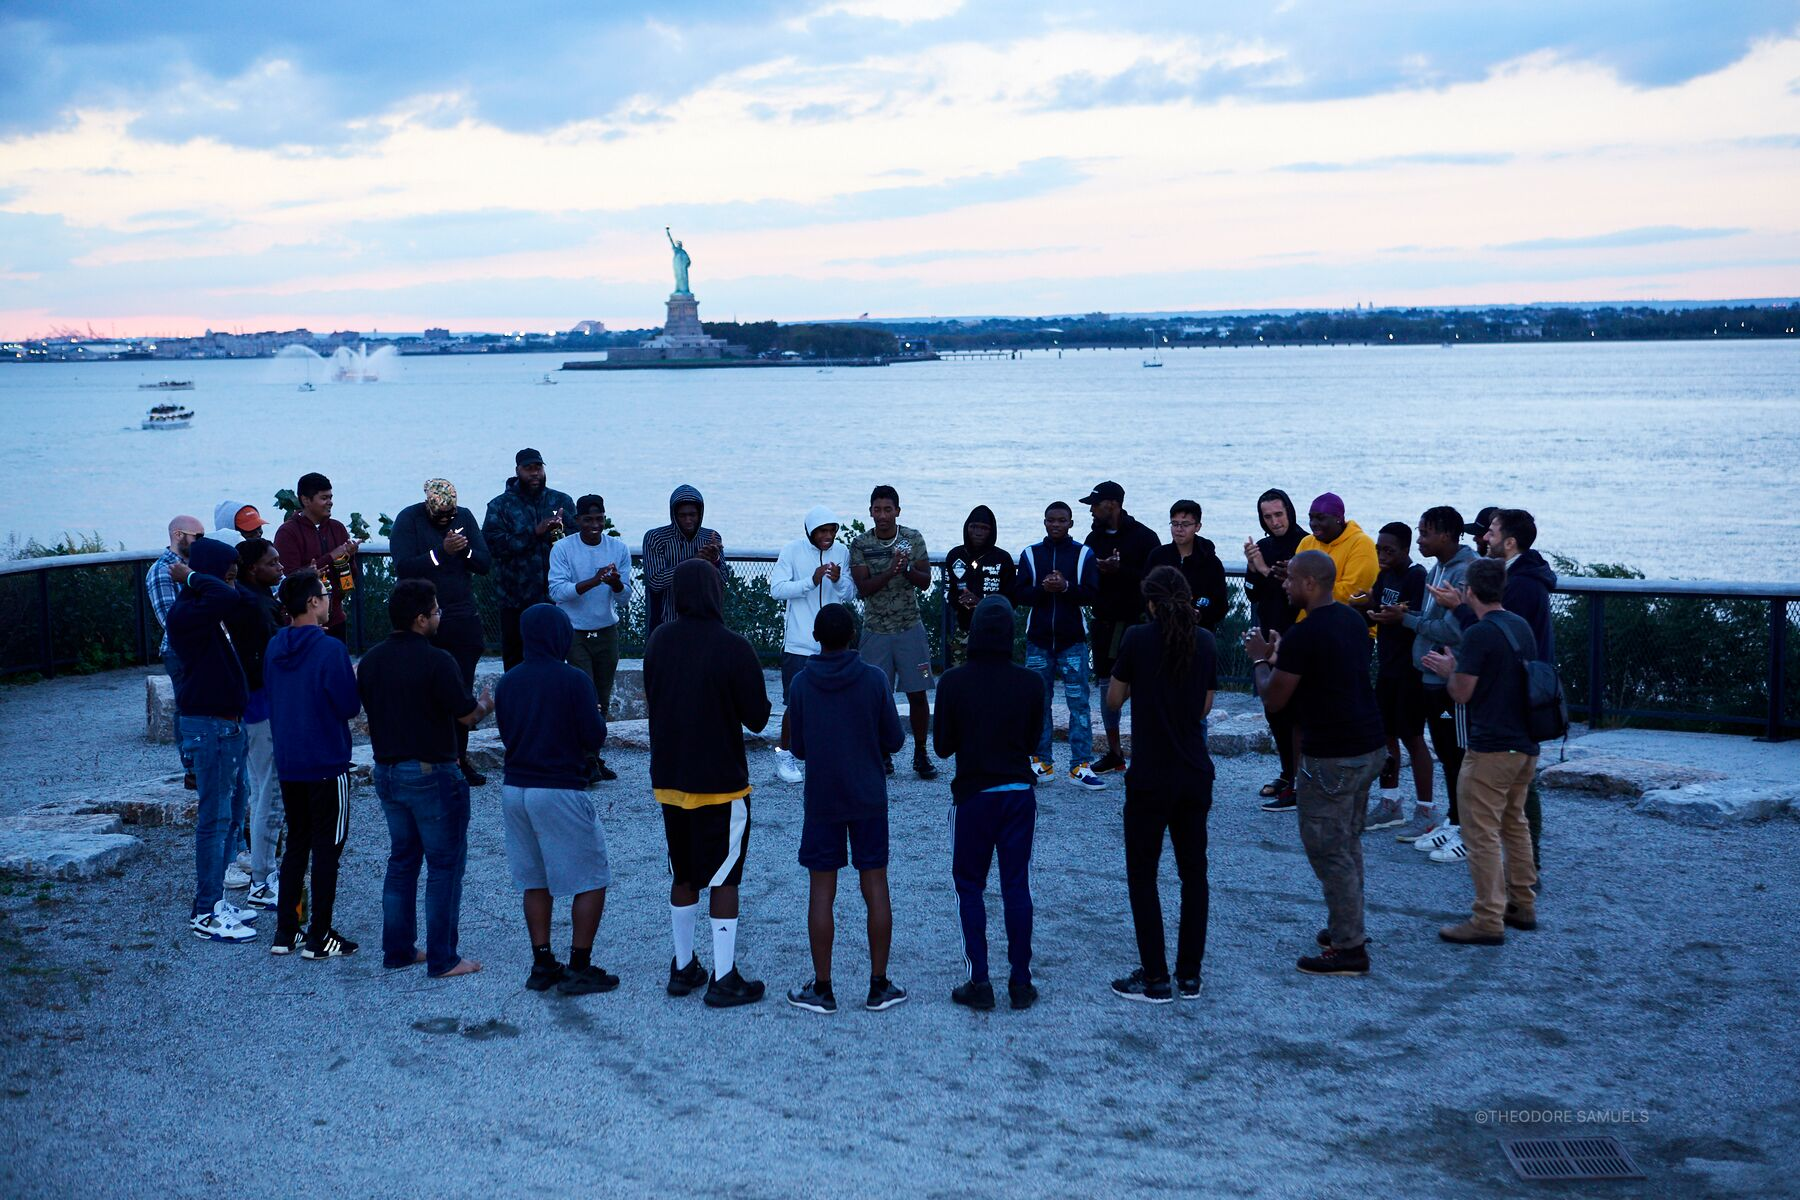 Camping to Connect at Governors Island, September 29, 2018